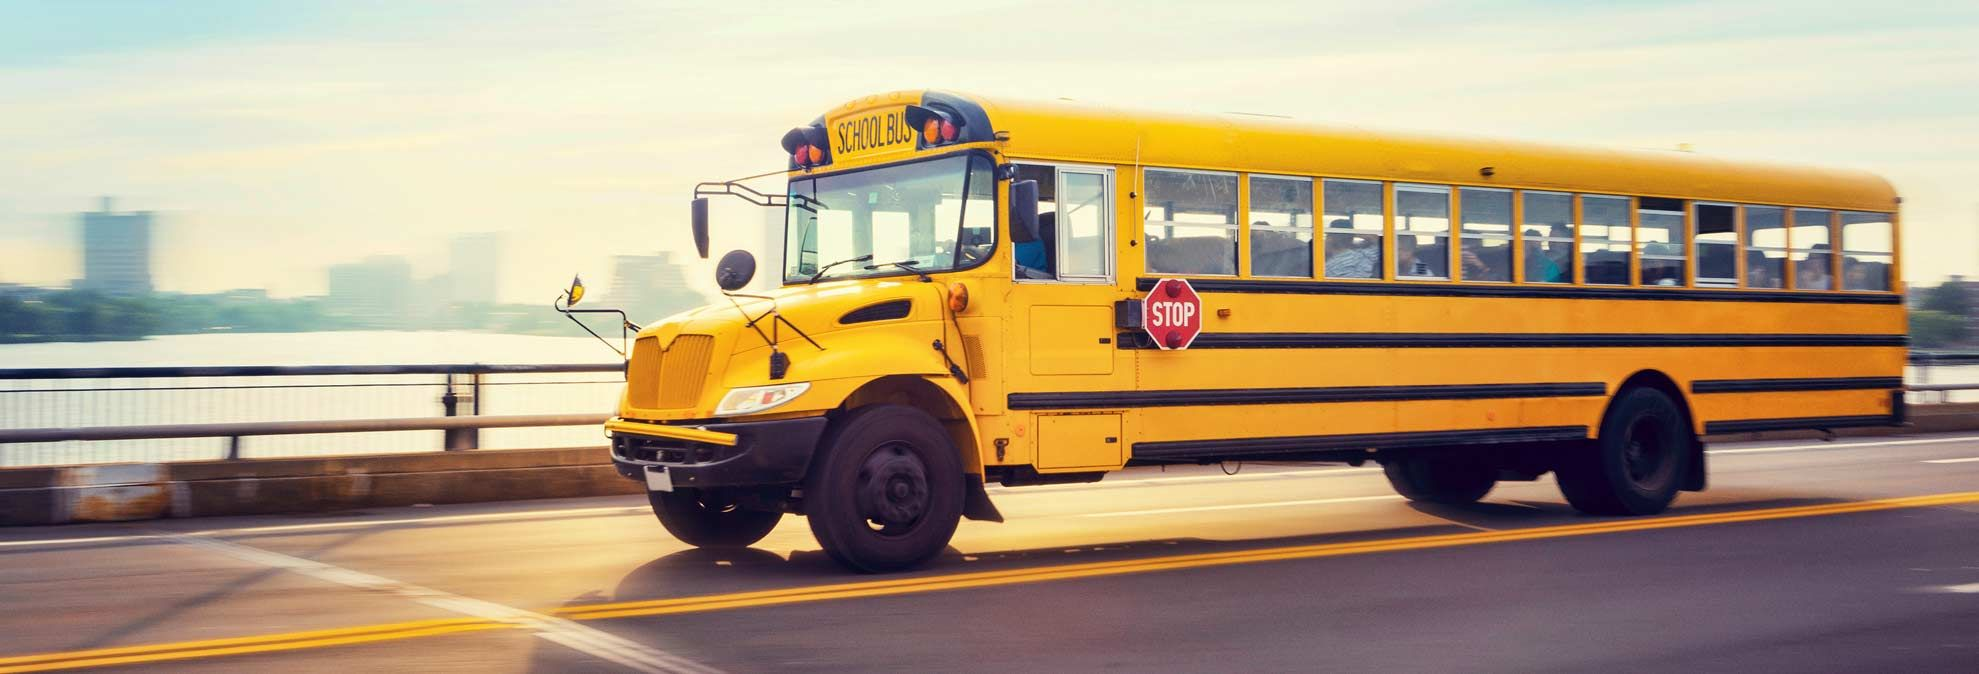 TDSB To Be Impacted If Durham Region Bus Drivers Go On